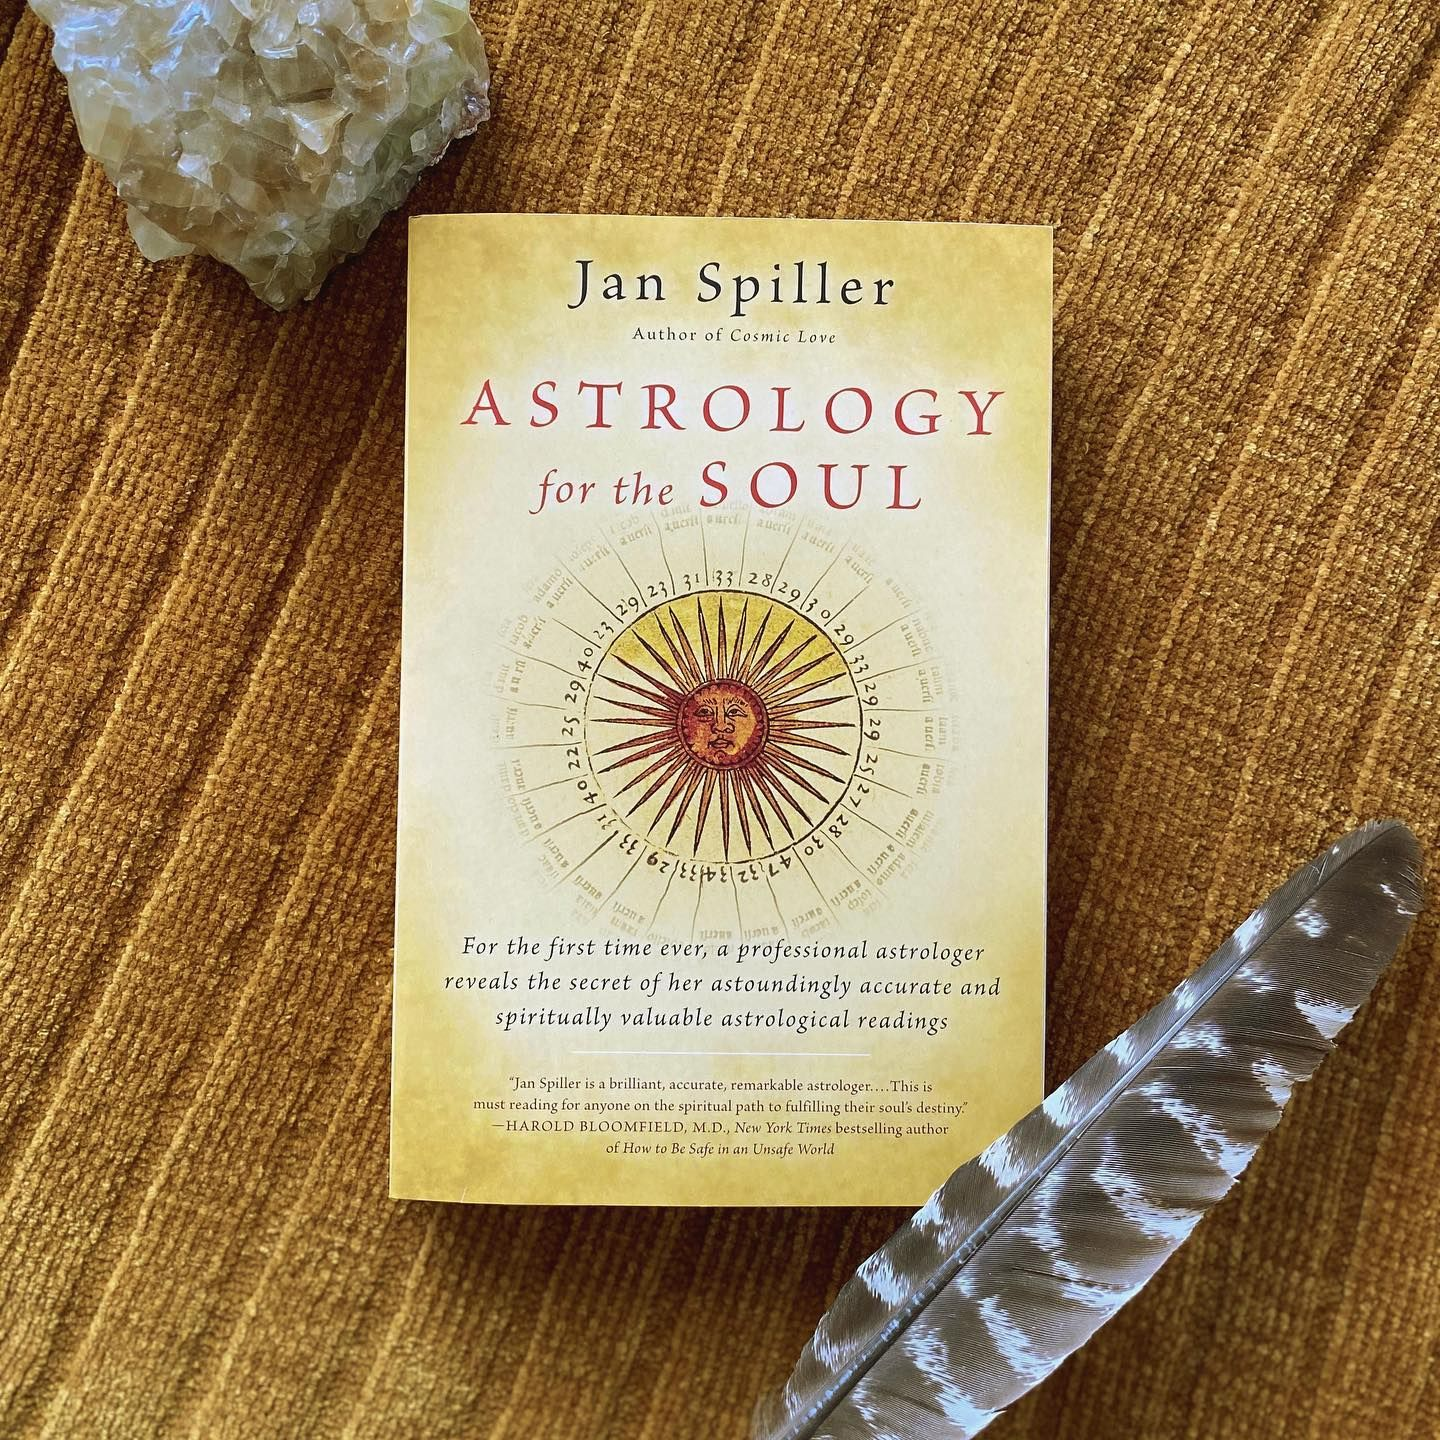 ✴︎ Book Review ✴︎ Jan Spiller's Astrology for the Soul is a ...